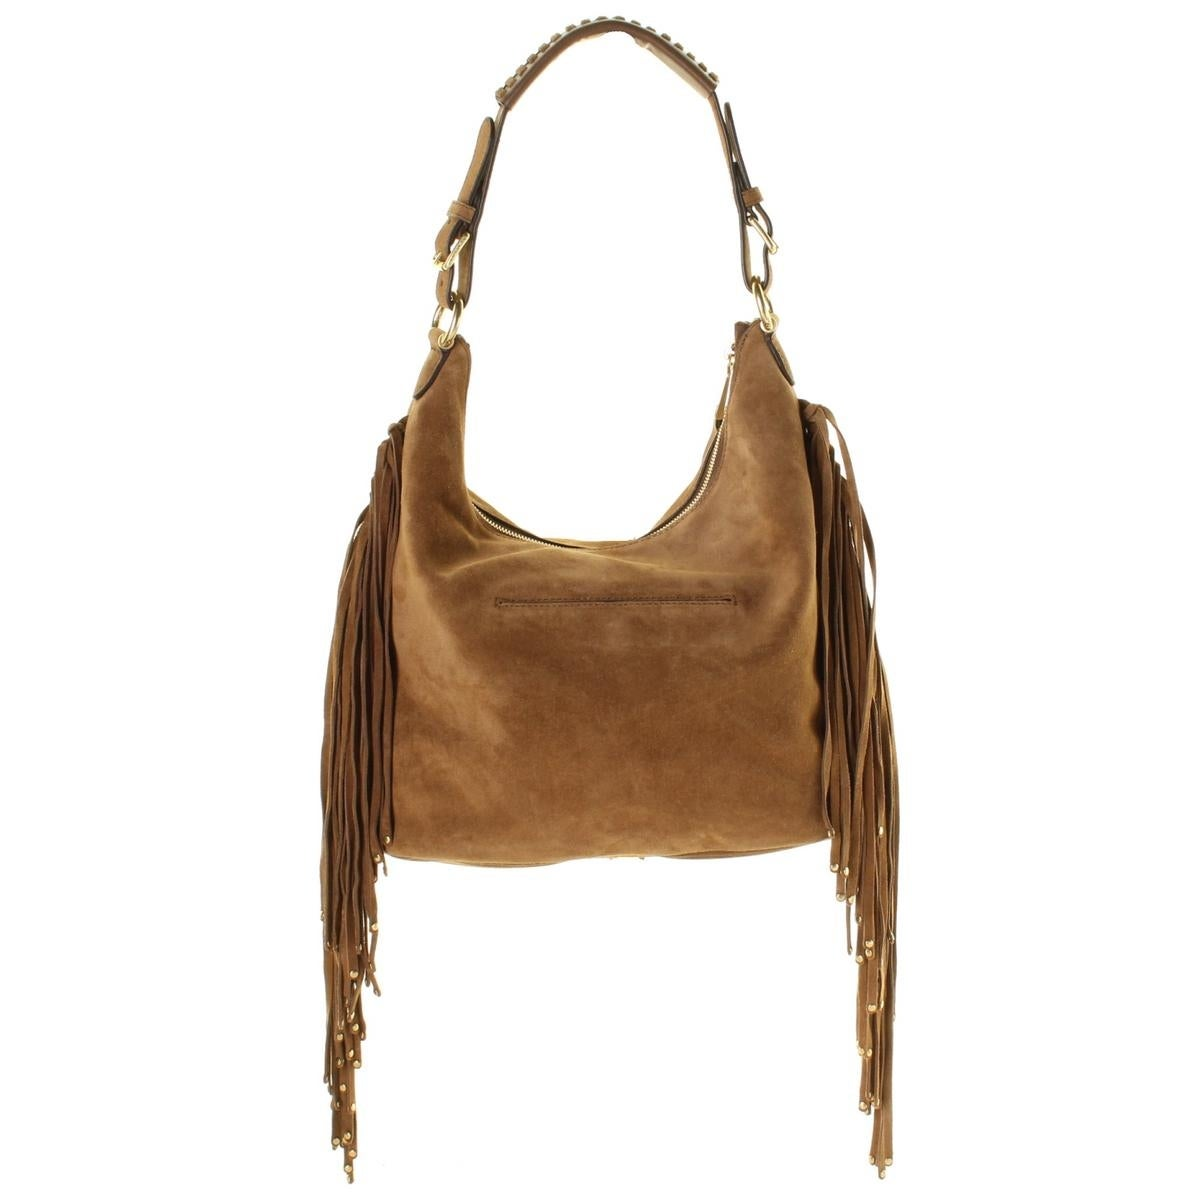 6b93d1fc30c86b Shop MICHAEL Michael Kors Womens Billy Hobo Handbag Suede Fringe - LARGE - Free  Shipping Today - Overstock - 19546328